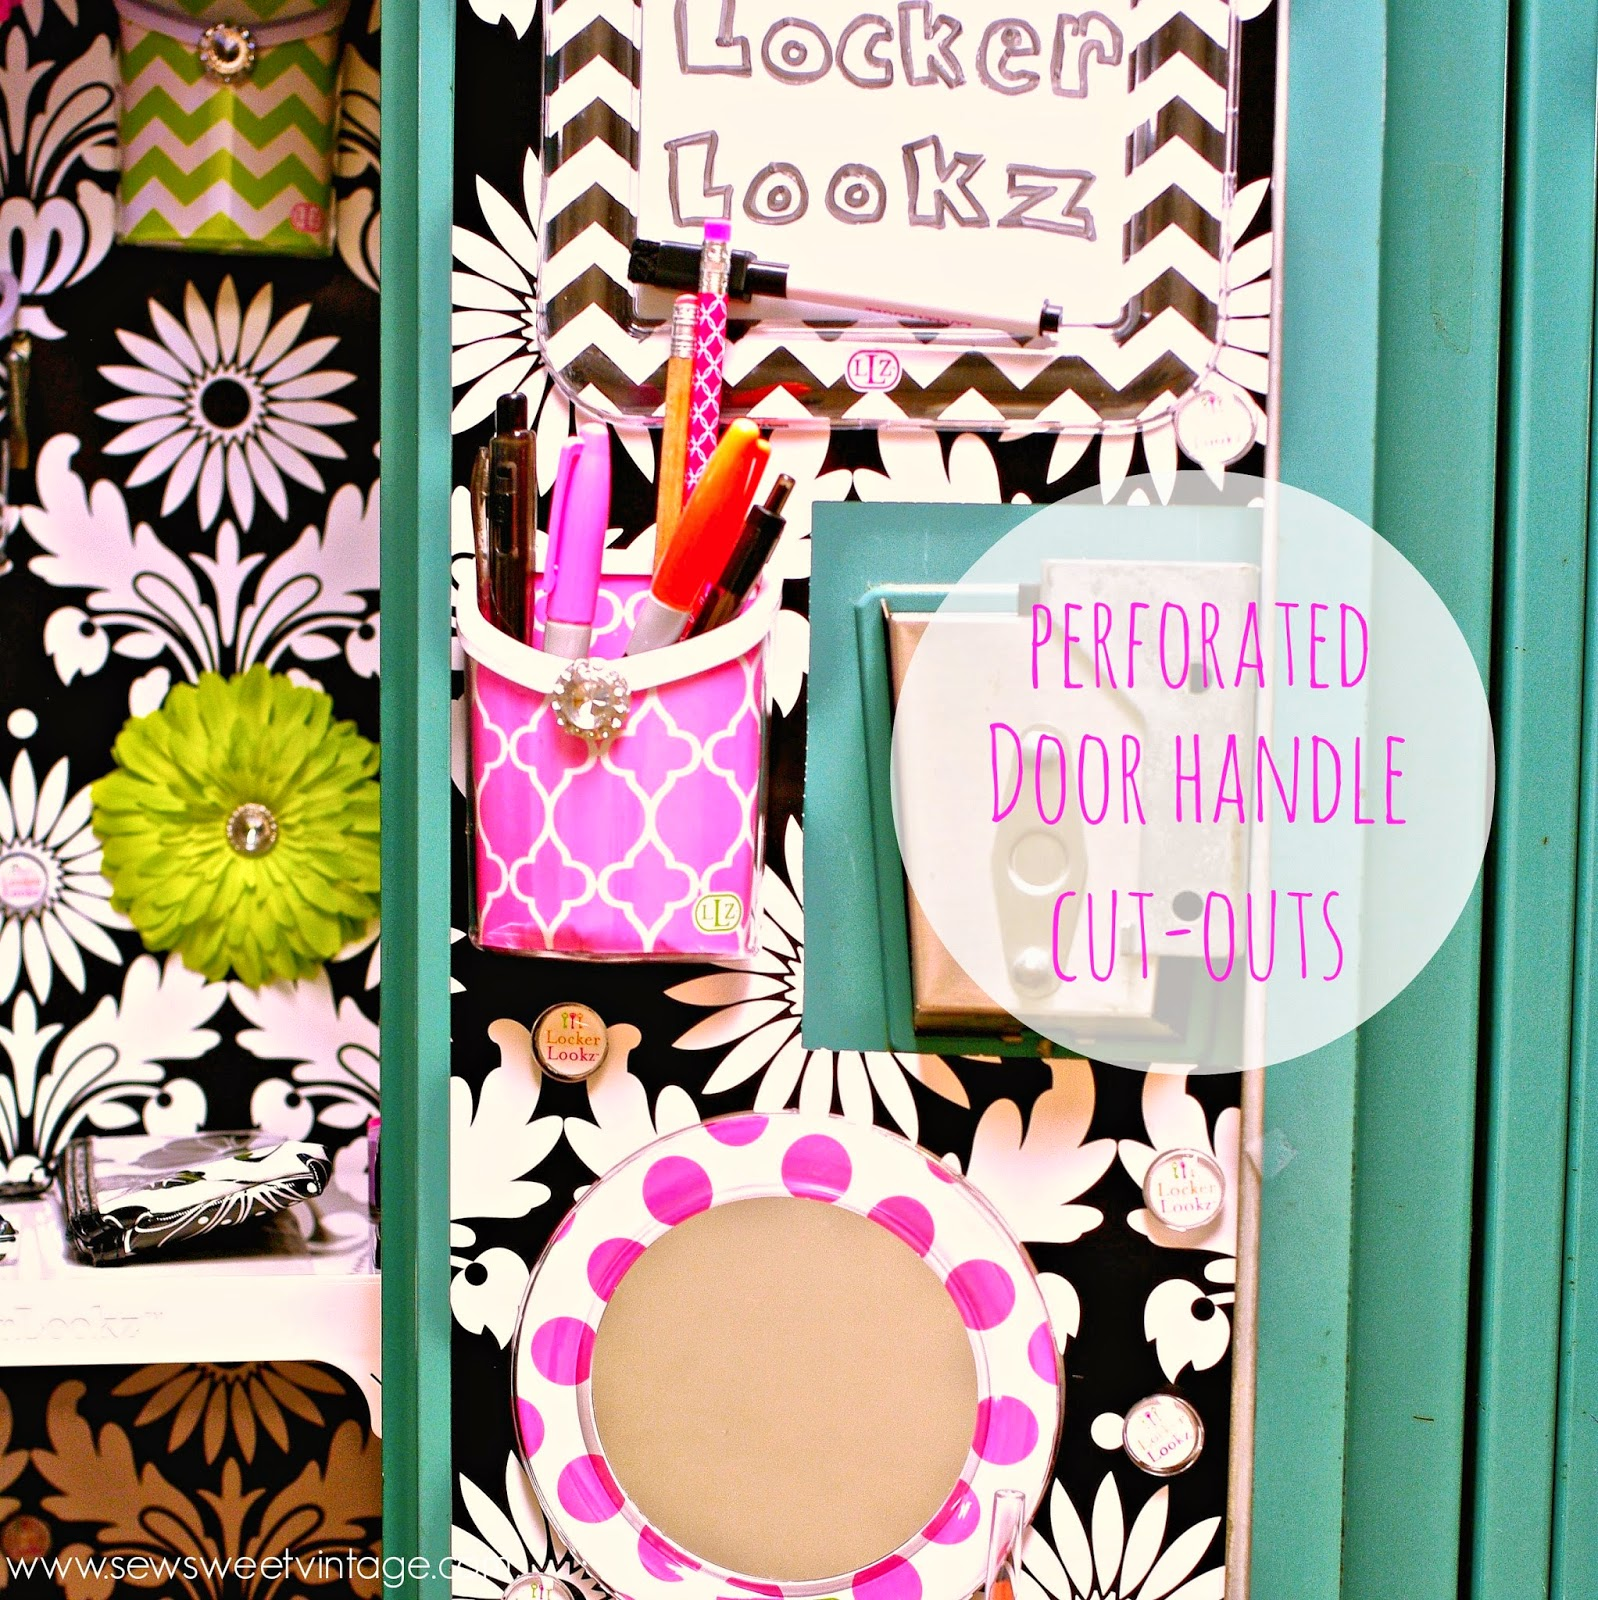 magnetic locker decorations LLZ by LockerLookz